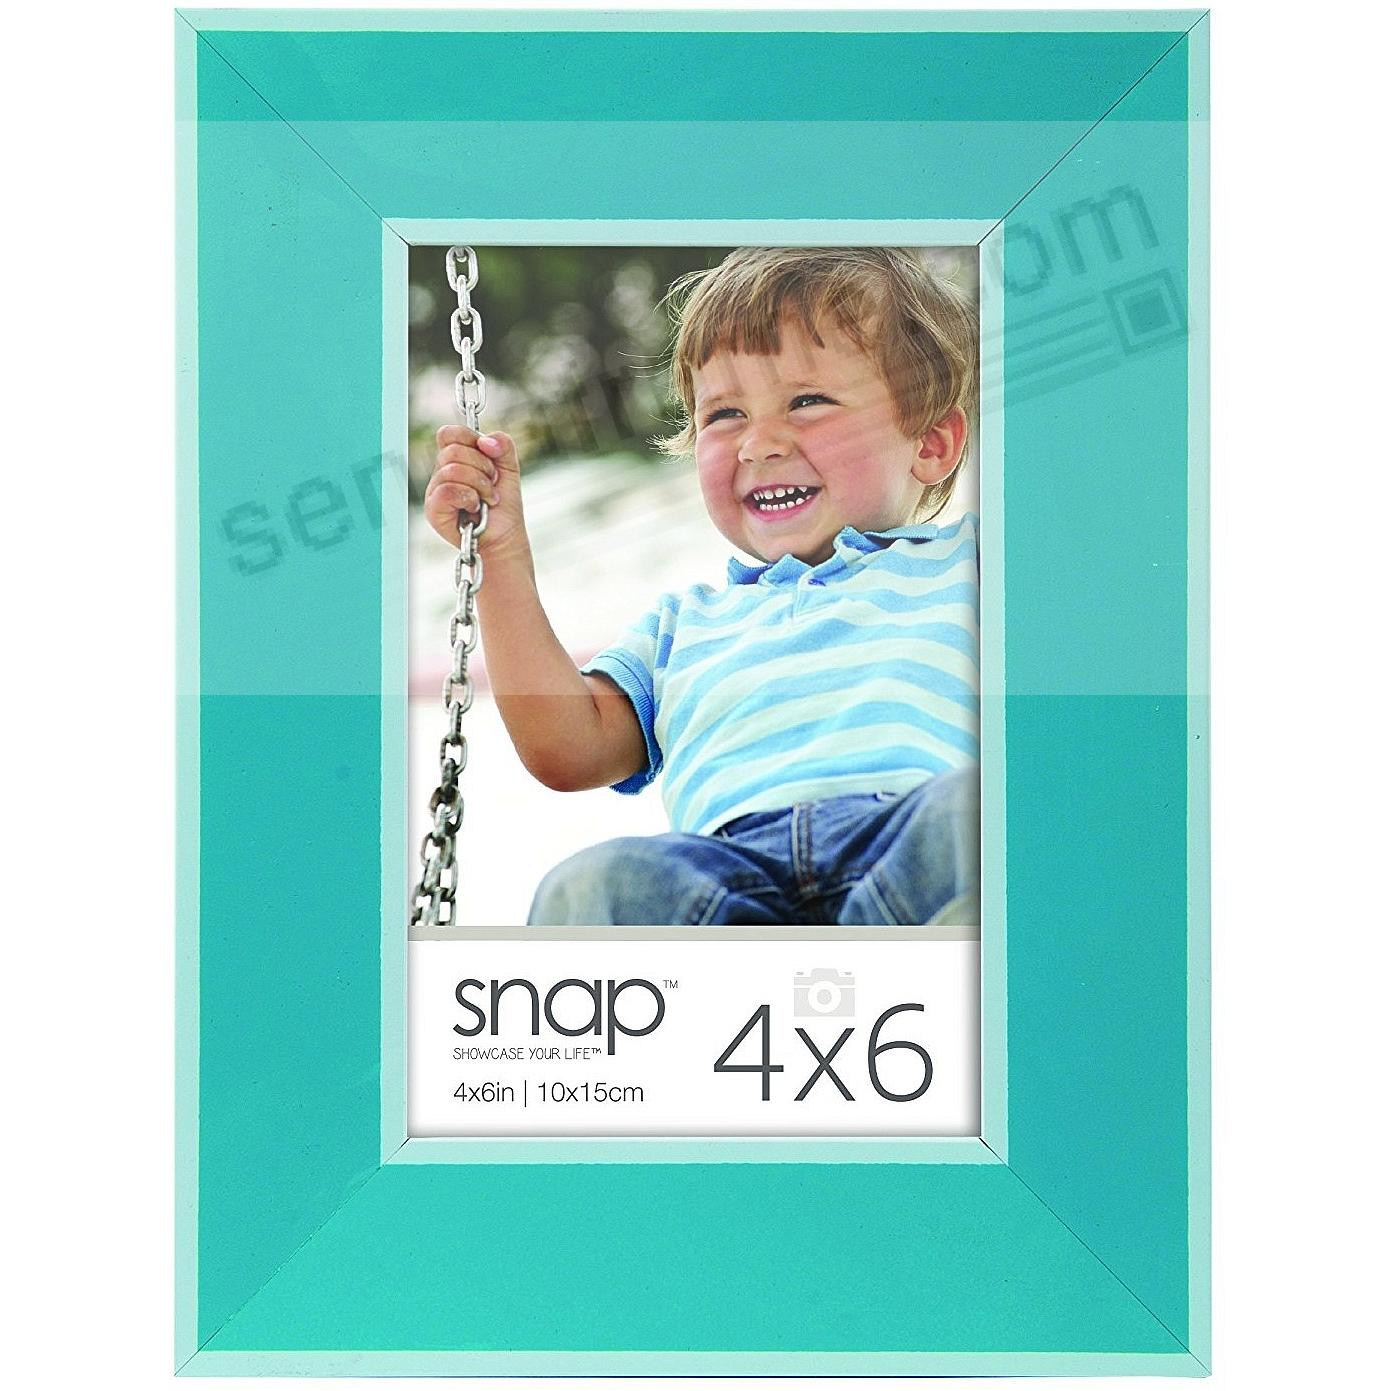 TURQUOISE w/White Accent 4x6 frame by SNAP®